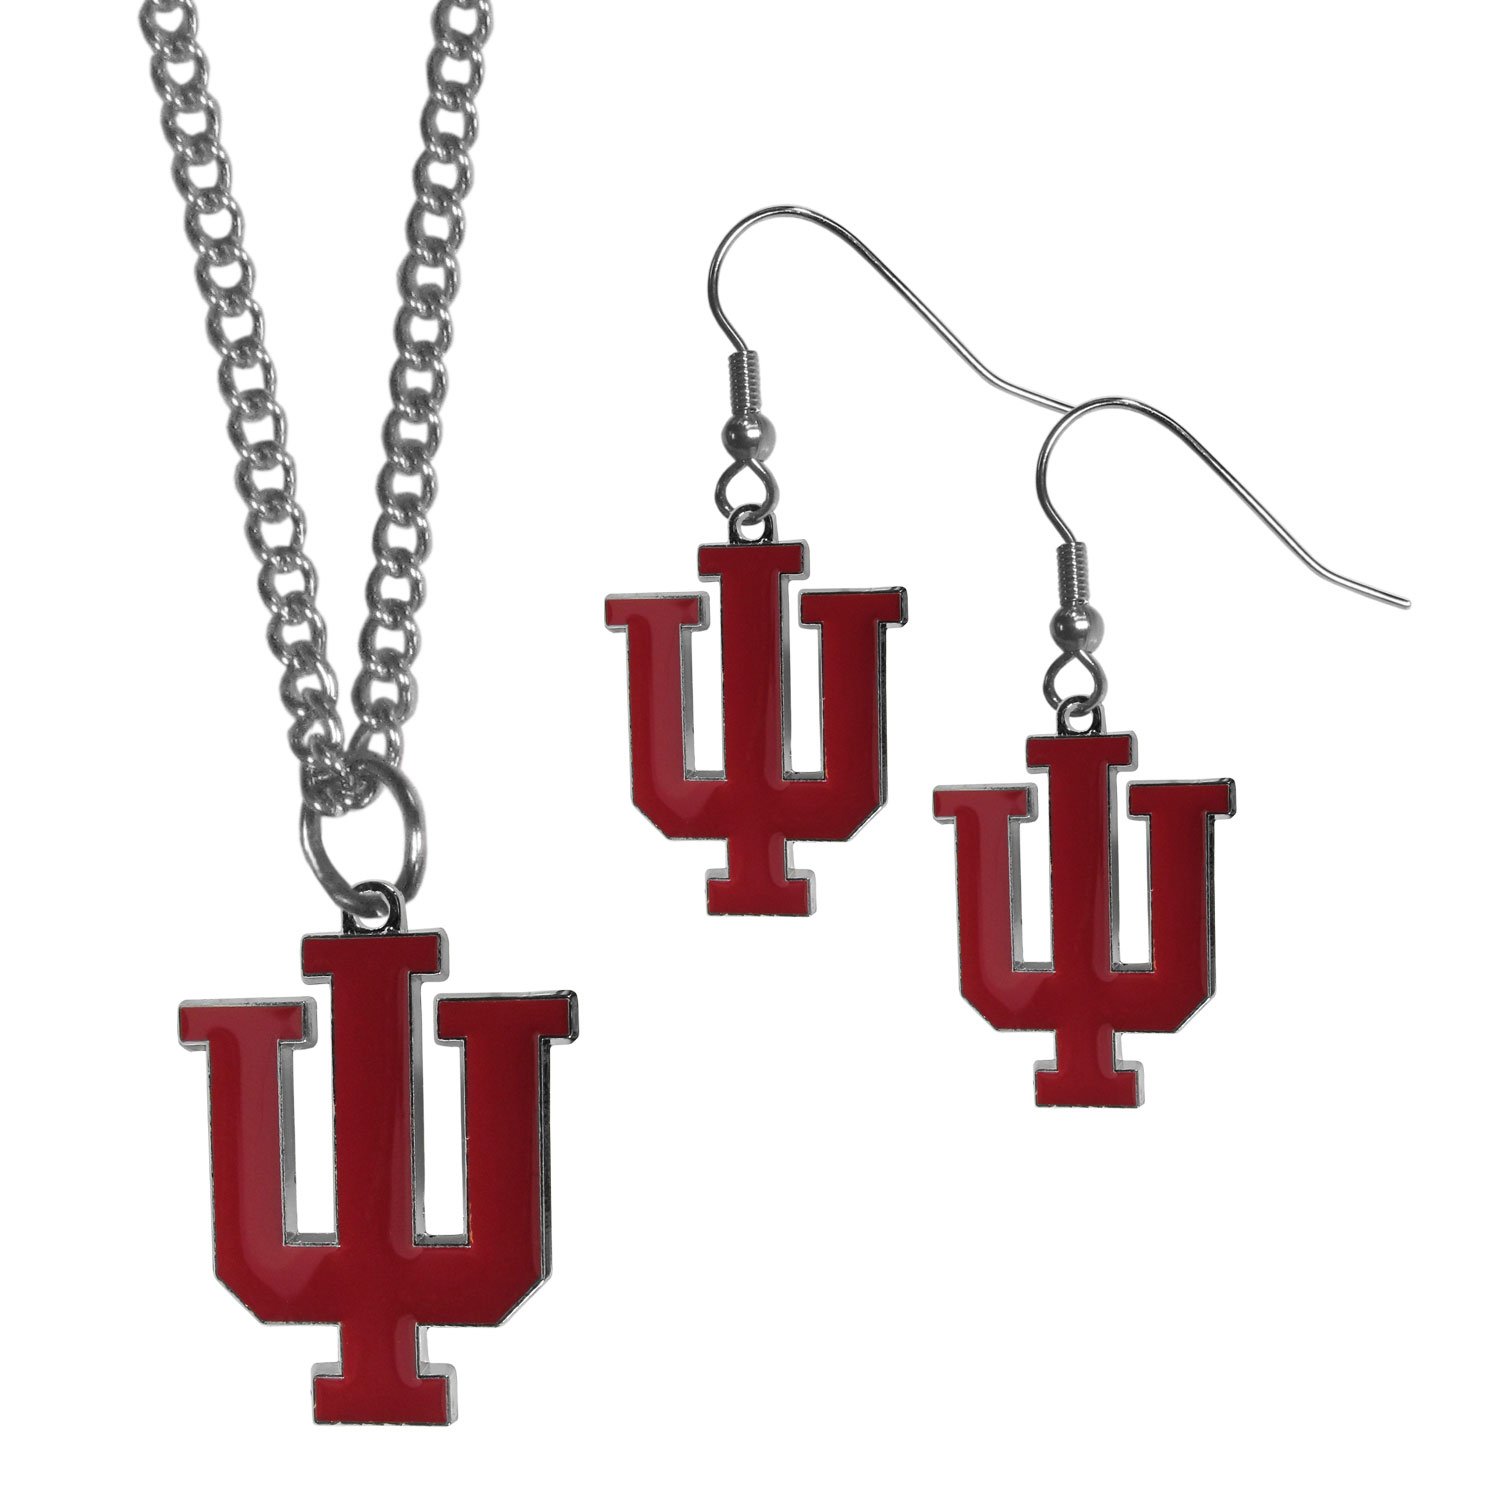 Indiana Hoosiers Dangle Earrings and Chain Necklace Set - This classic jewelry set contains are most popular Indiana Hoosiers dangle earrings and 22 inch chain necklace. The trendy, dangle earrings are lightweight and feature a fully cast metal team charm with enameled team colors. The matching necklace completes this fashion forward combo and is a spirited set that is perfect for game day but nice enough for everyday.